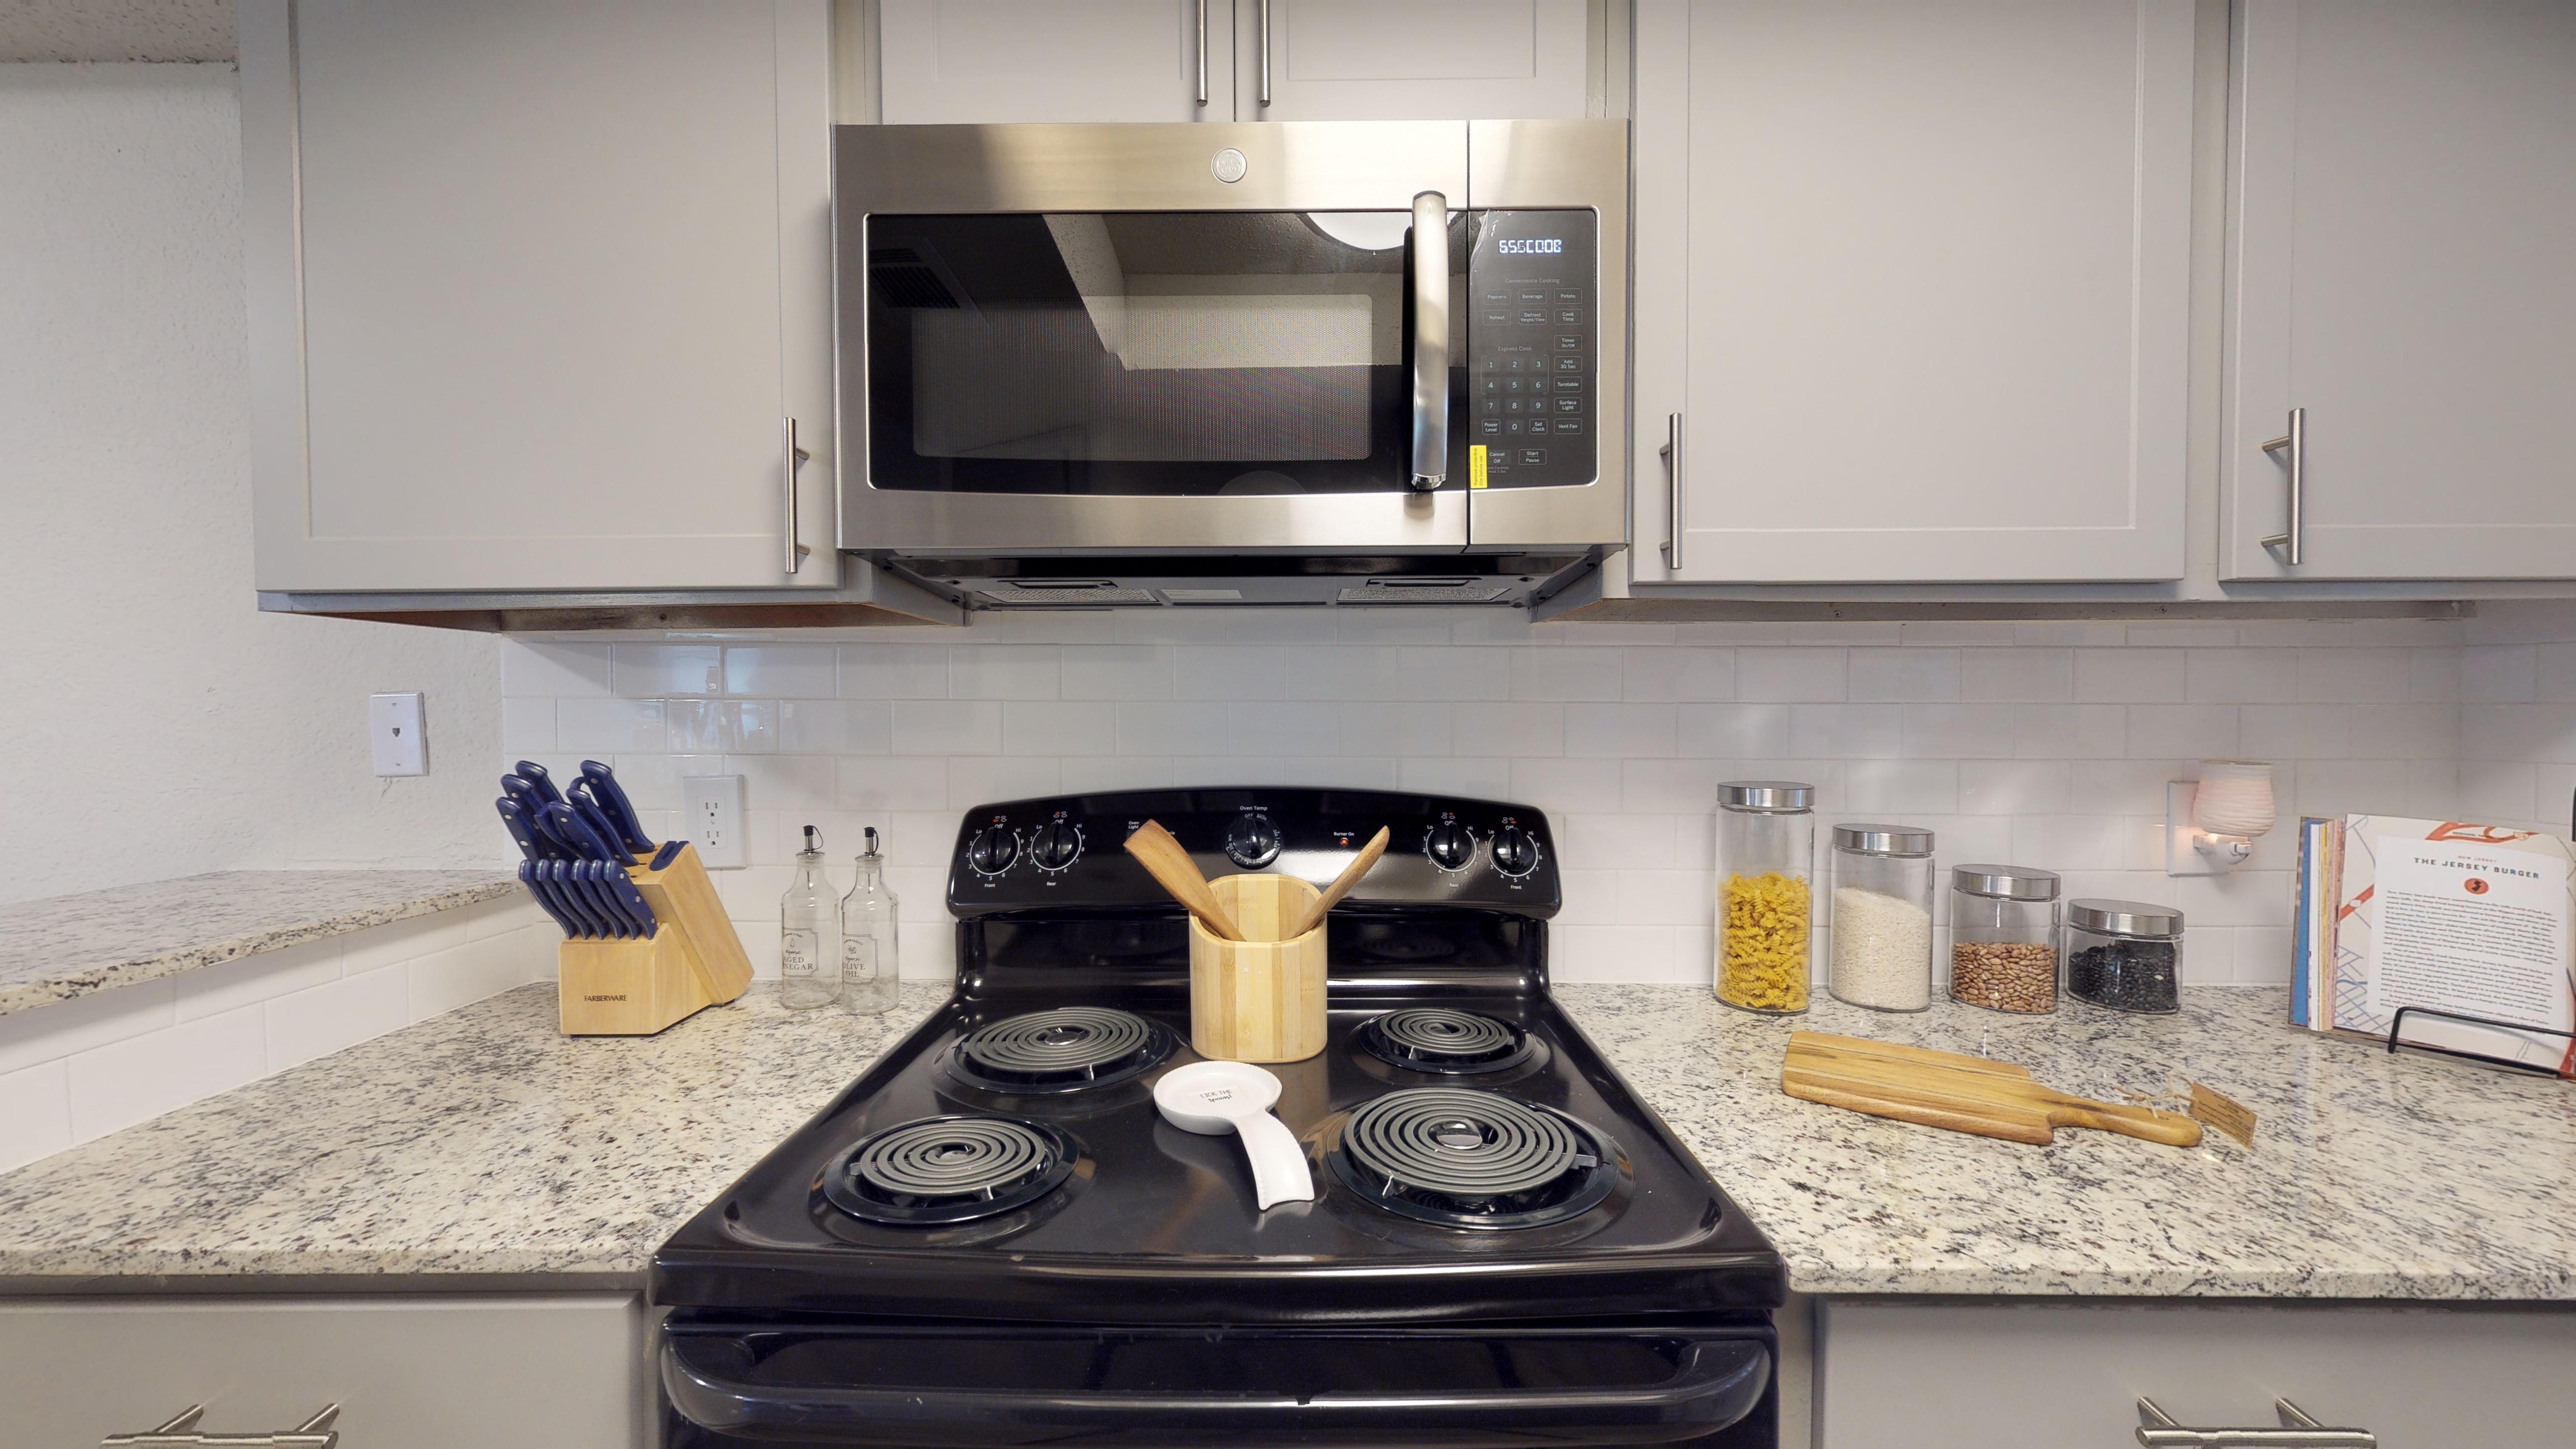 a black stove top oven sitting inside of a kitchen